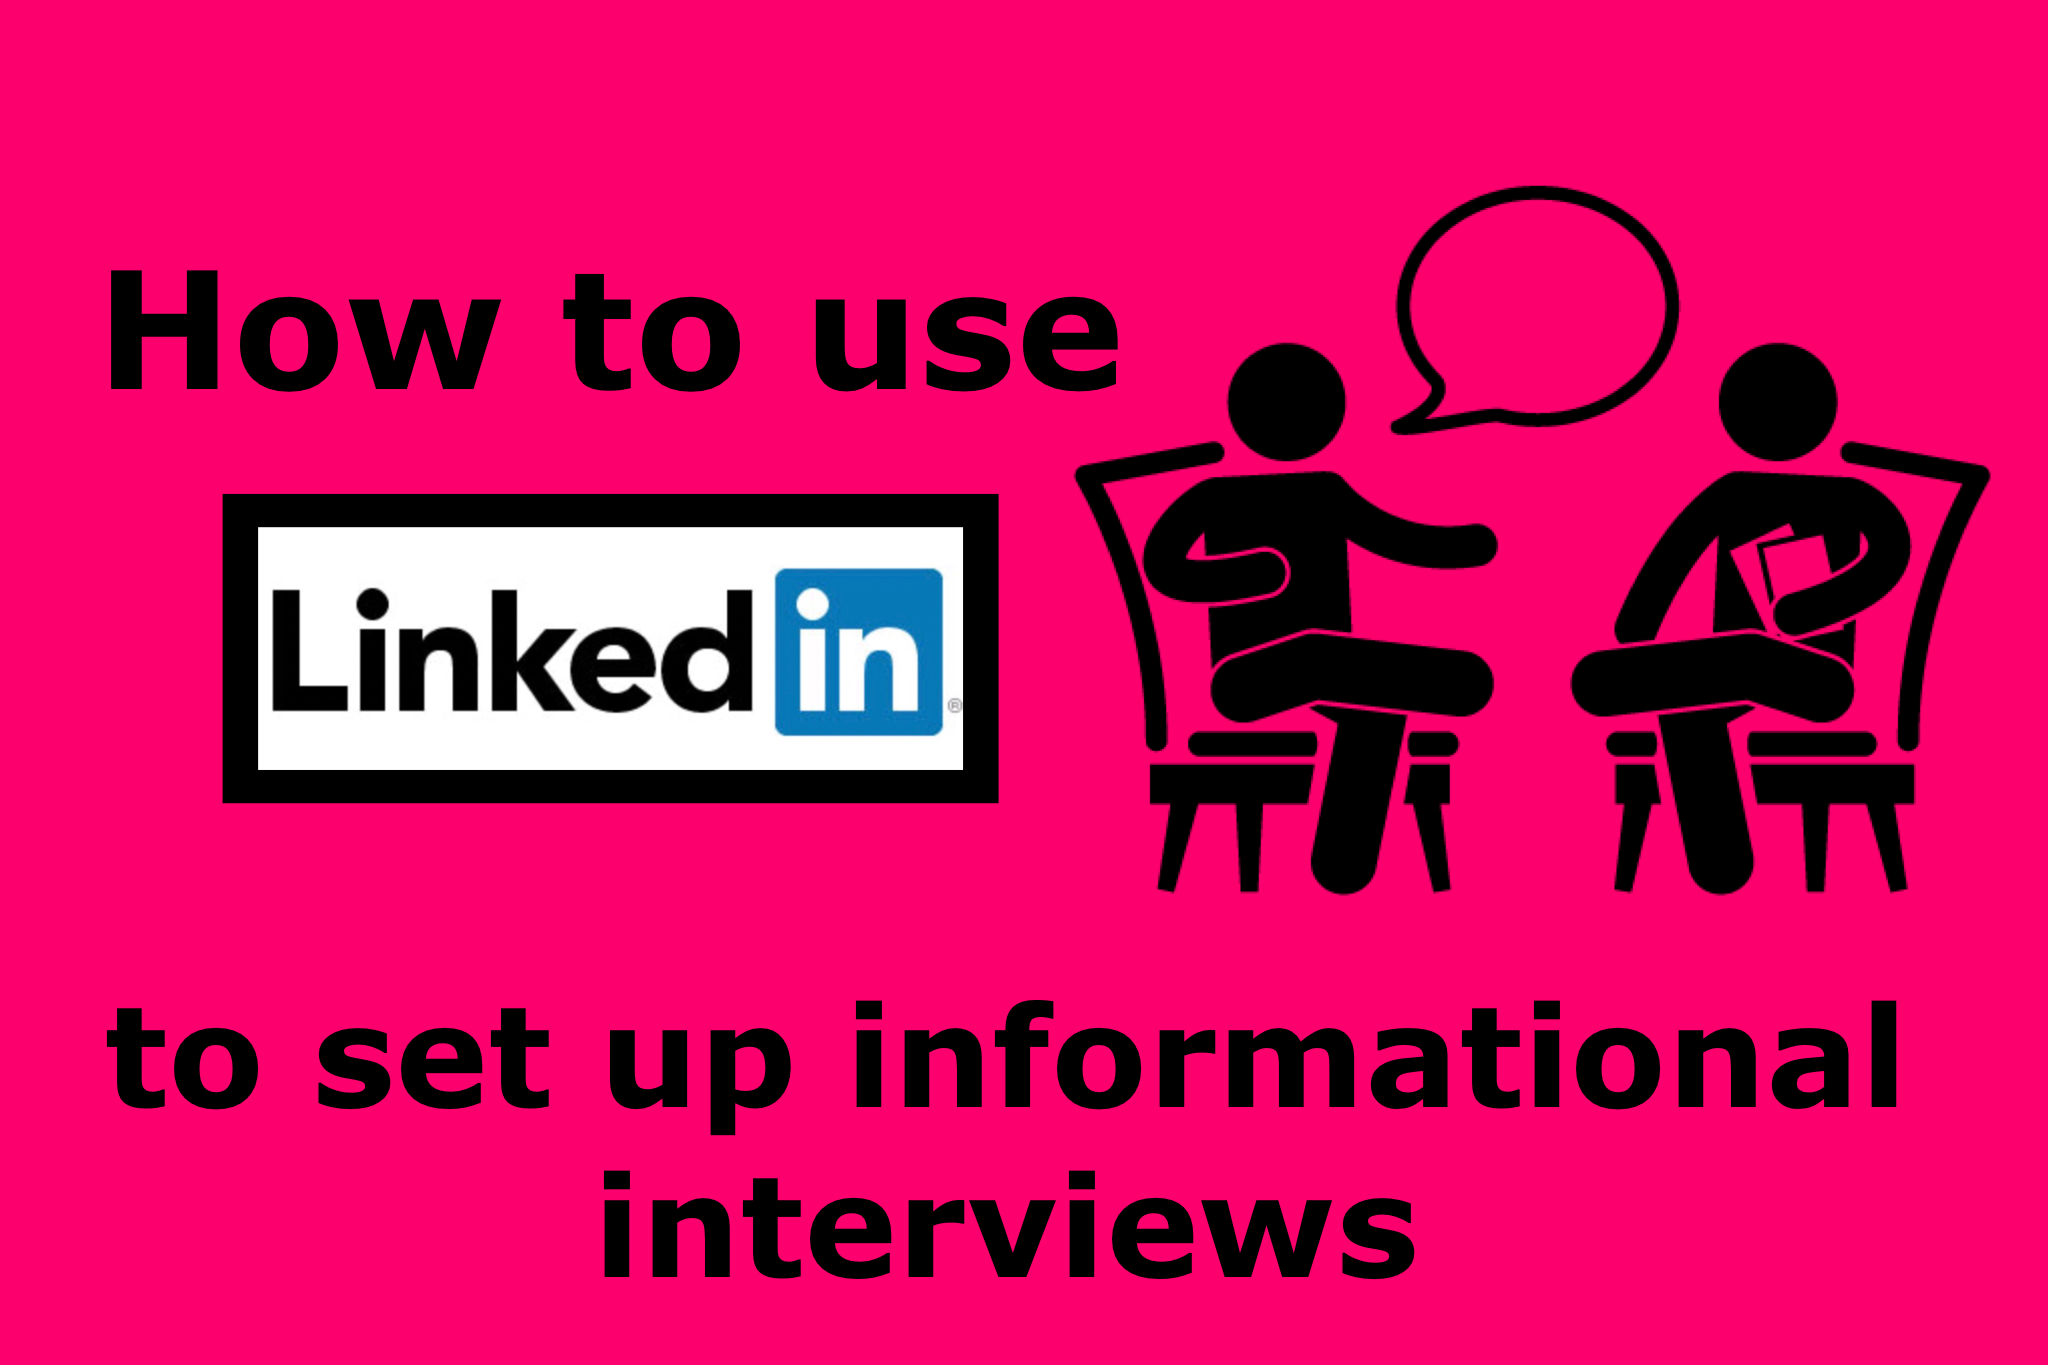 How to Use LinkedIn to Set Up Informational Interviews